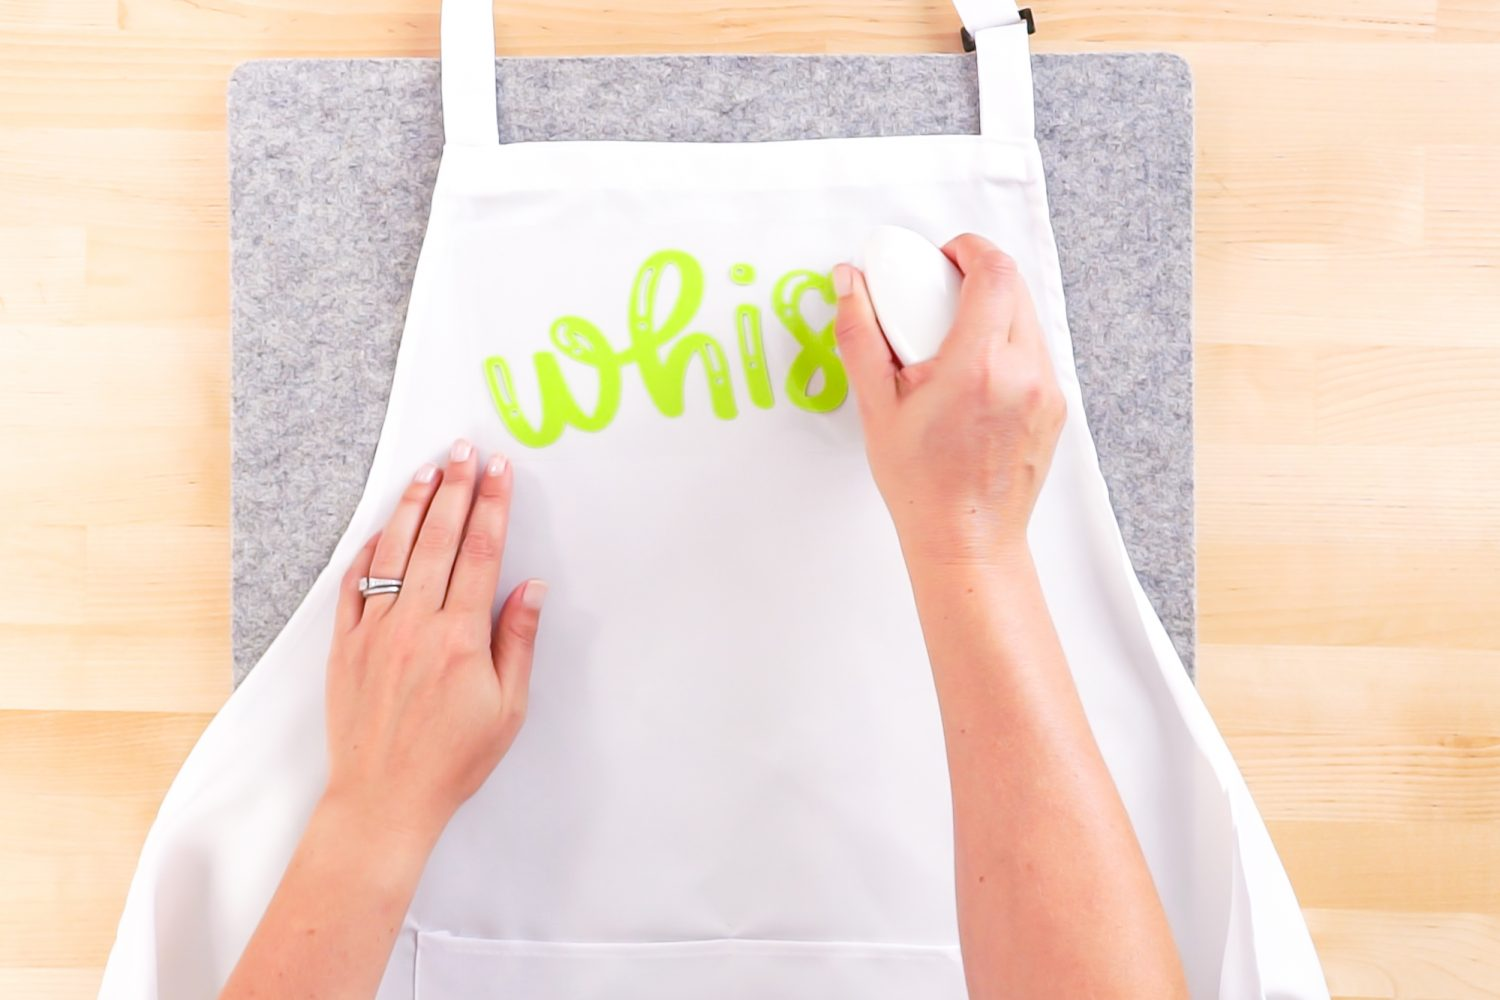 Iron the first layer onto your apron using the EasyPress Mini.